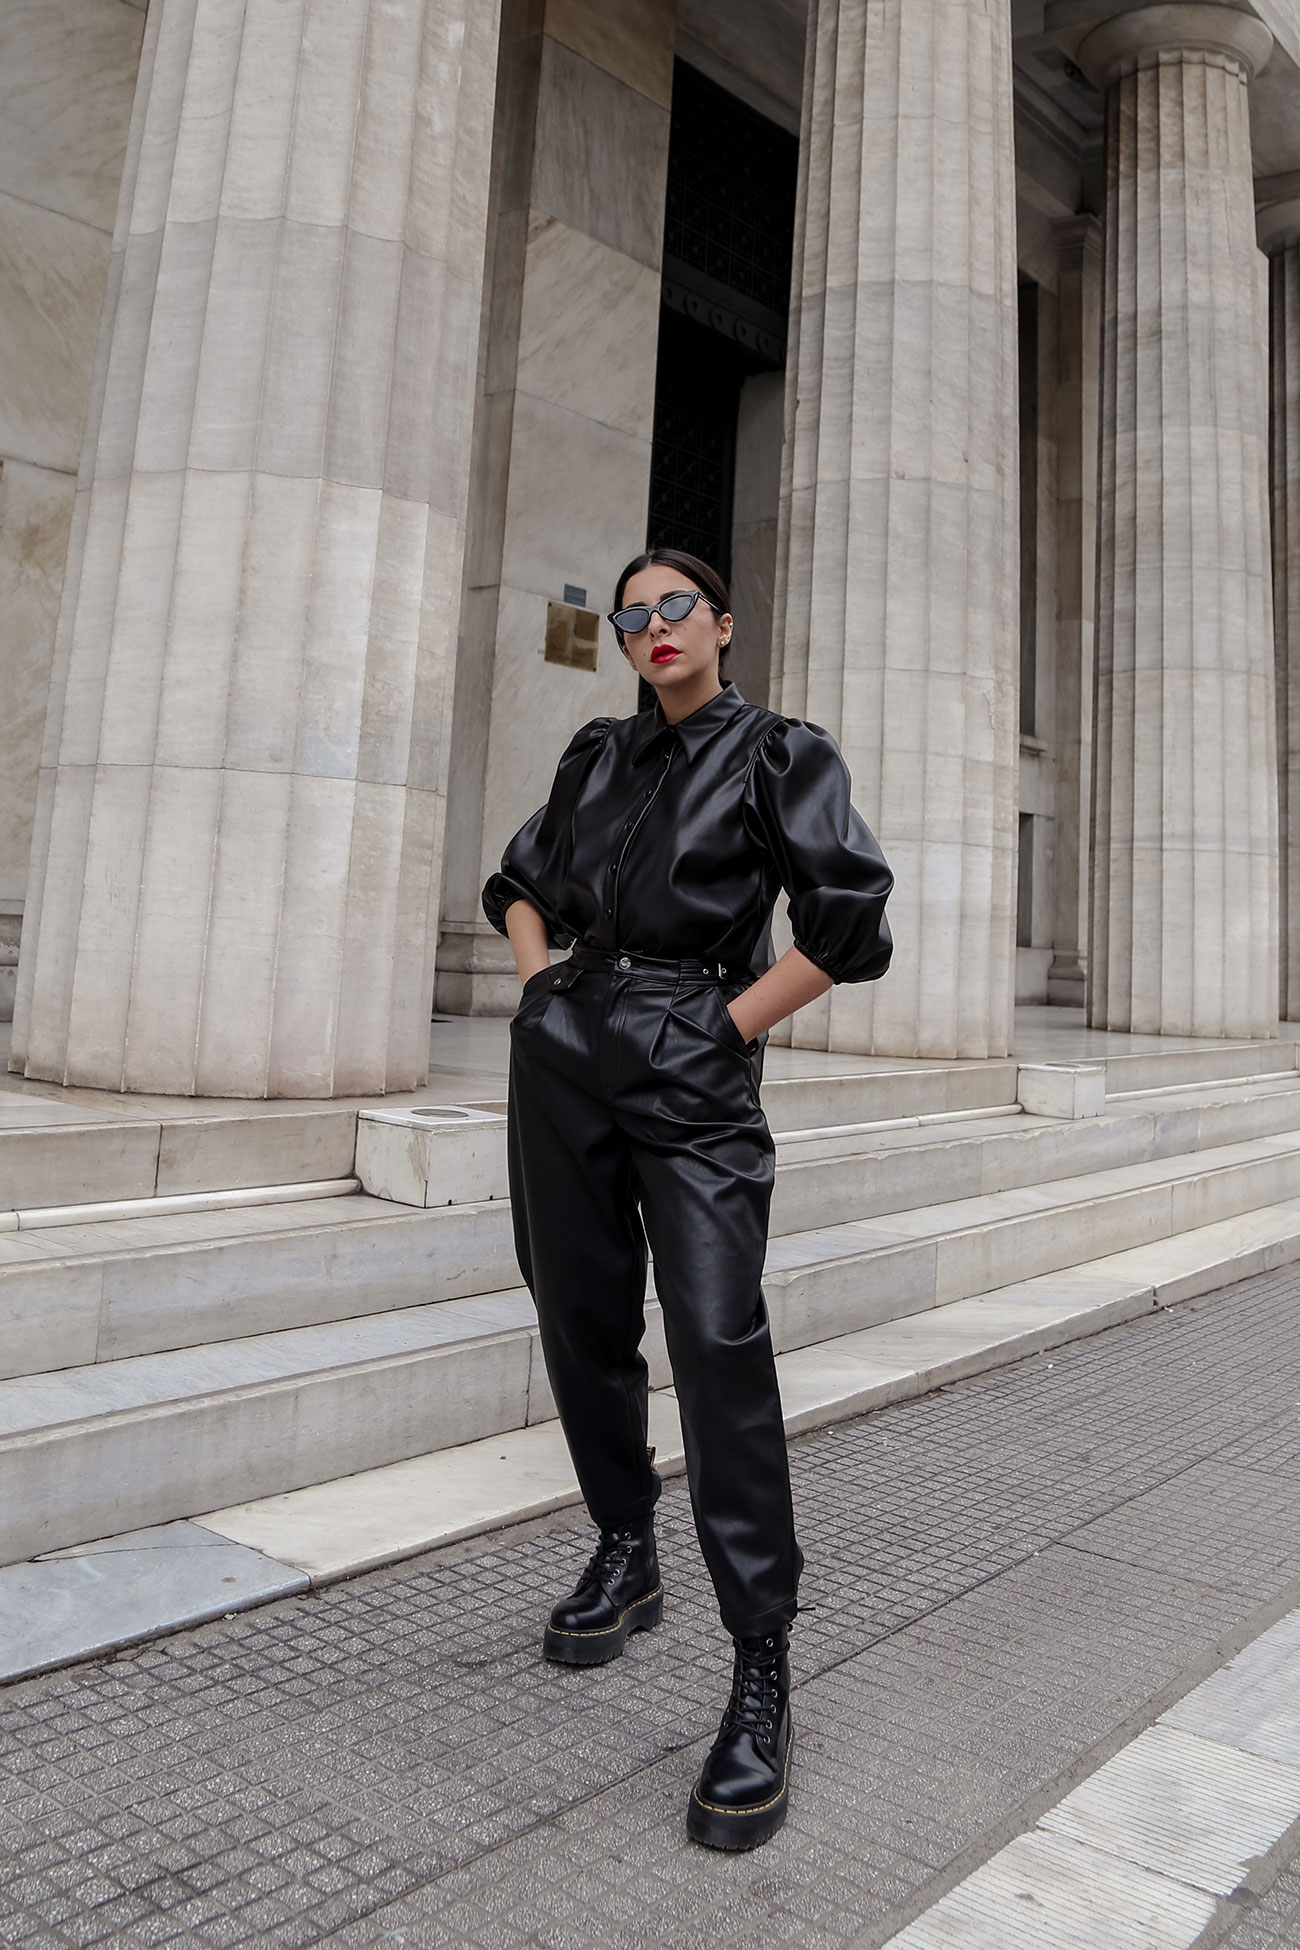 Stella Asteria wearing leather on leather look in total black